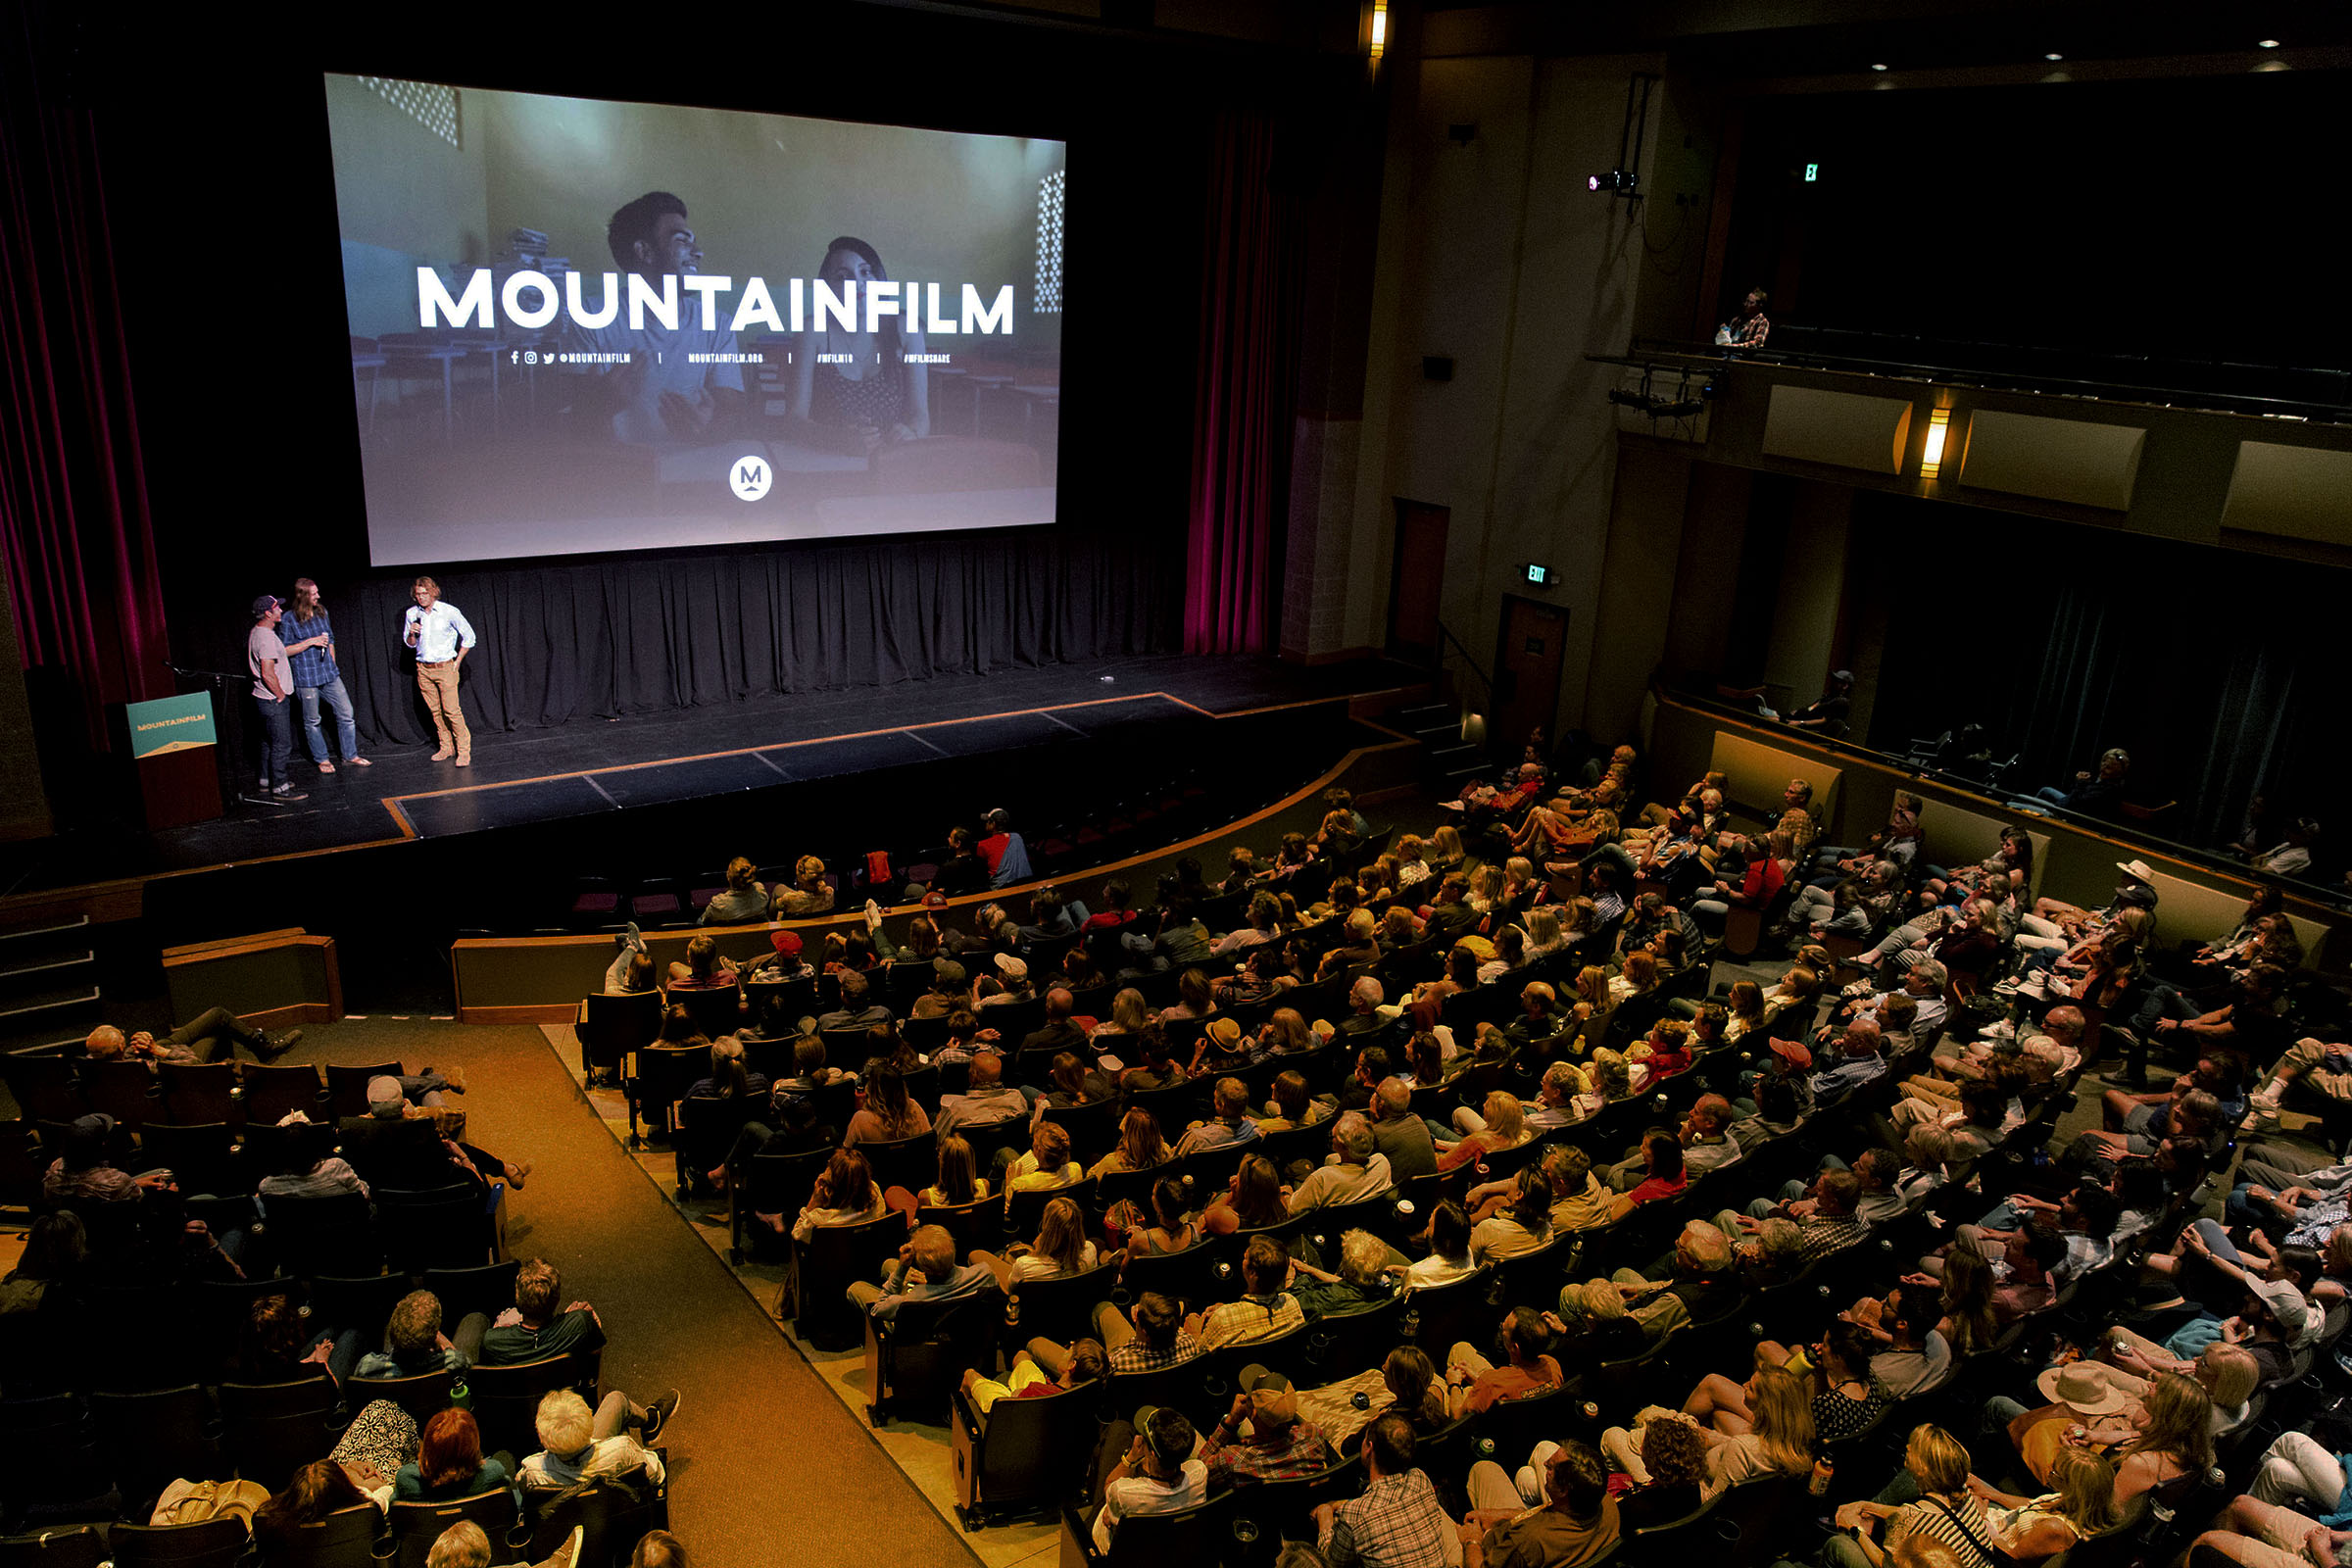 Mountainfilm_audience